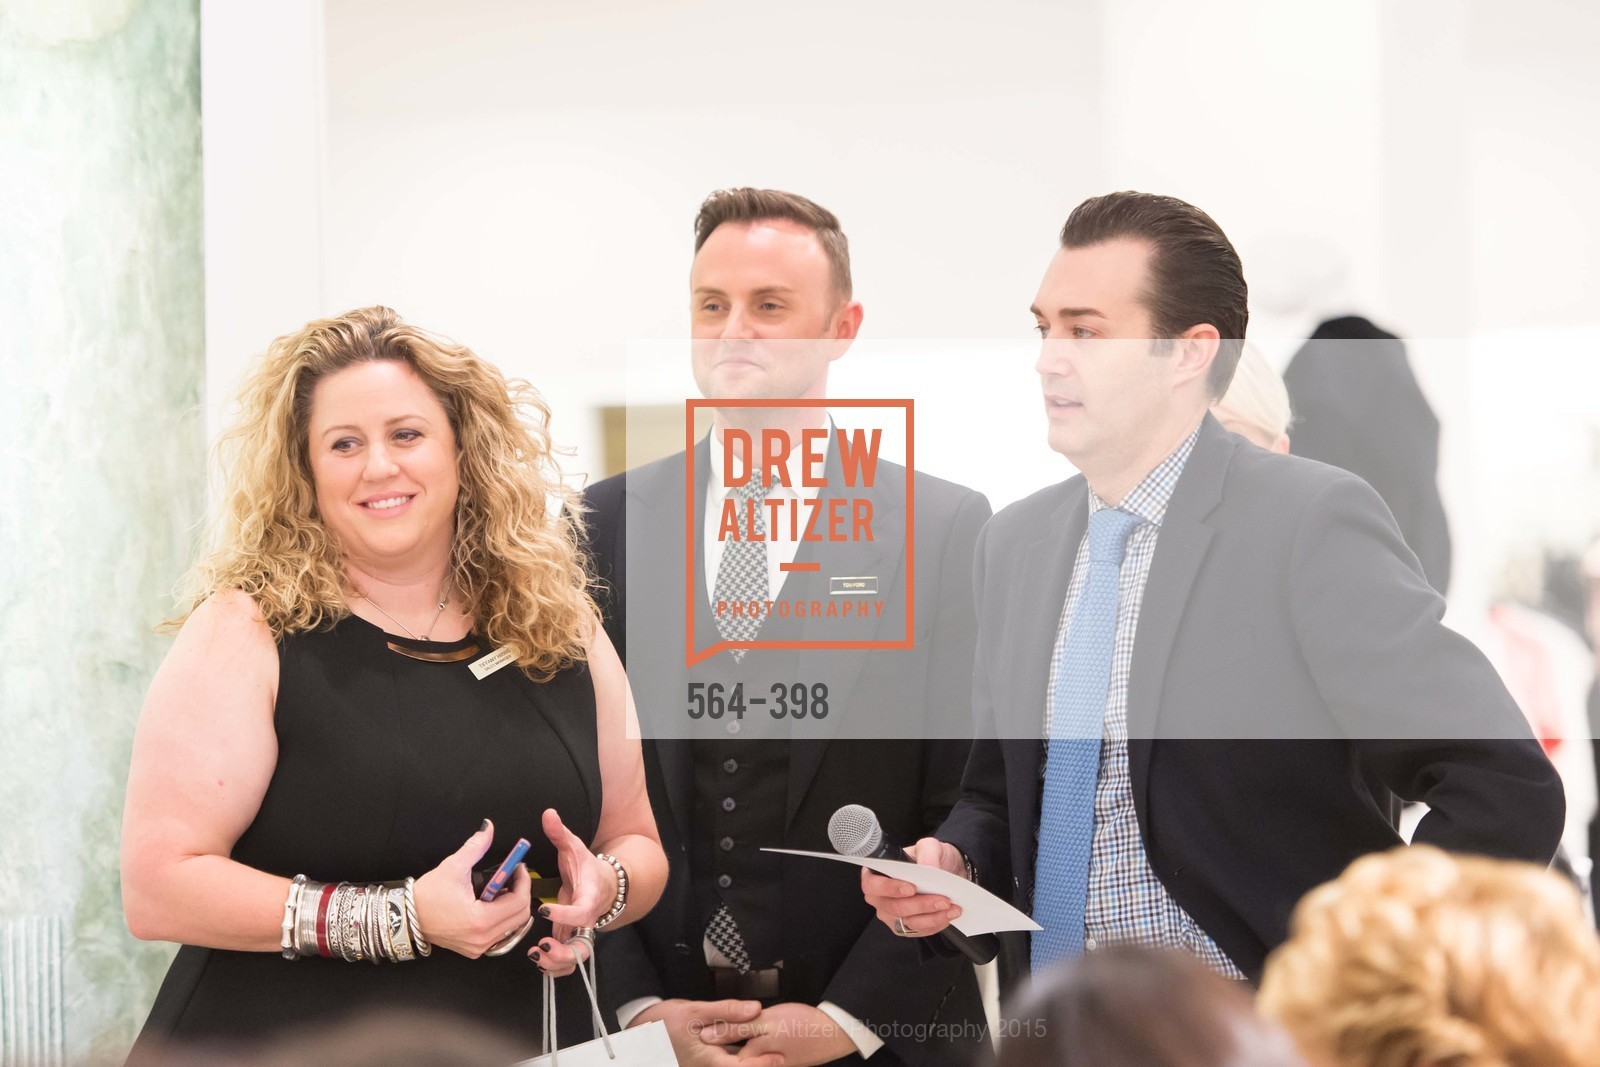 Tiffany Hibbs, Todd Davidson, Chuck Steelman, Project Beauty at Neiman Marcus Palo Alto, Neiman Marcus, October 16th, 2015,Drew Altizer, Drew Altizer Photography, full-service agency, private events, San Francisco photographer, photographer california